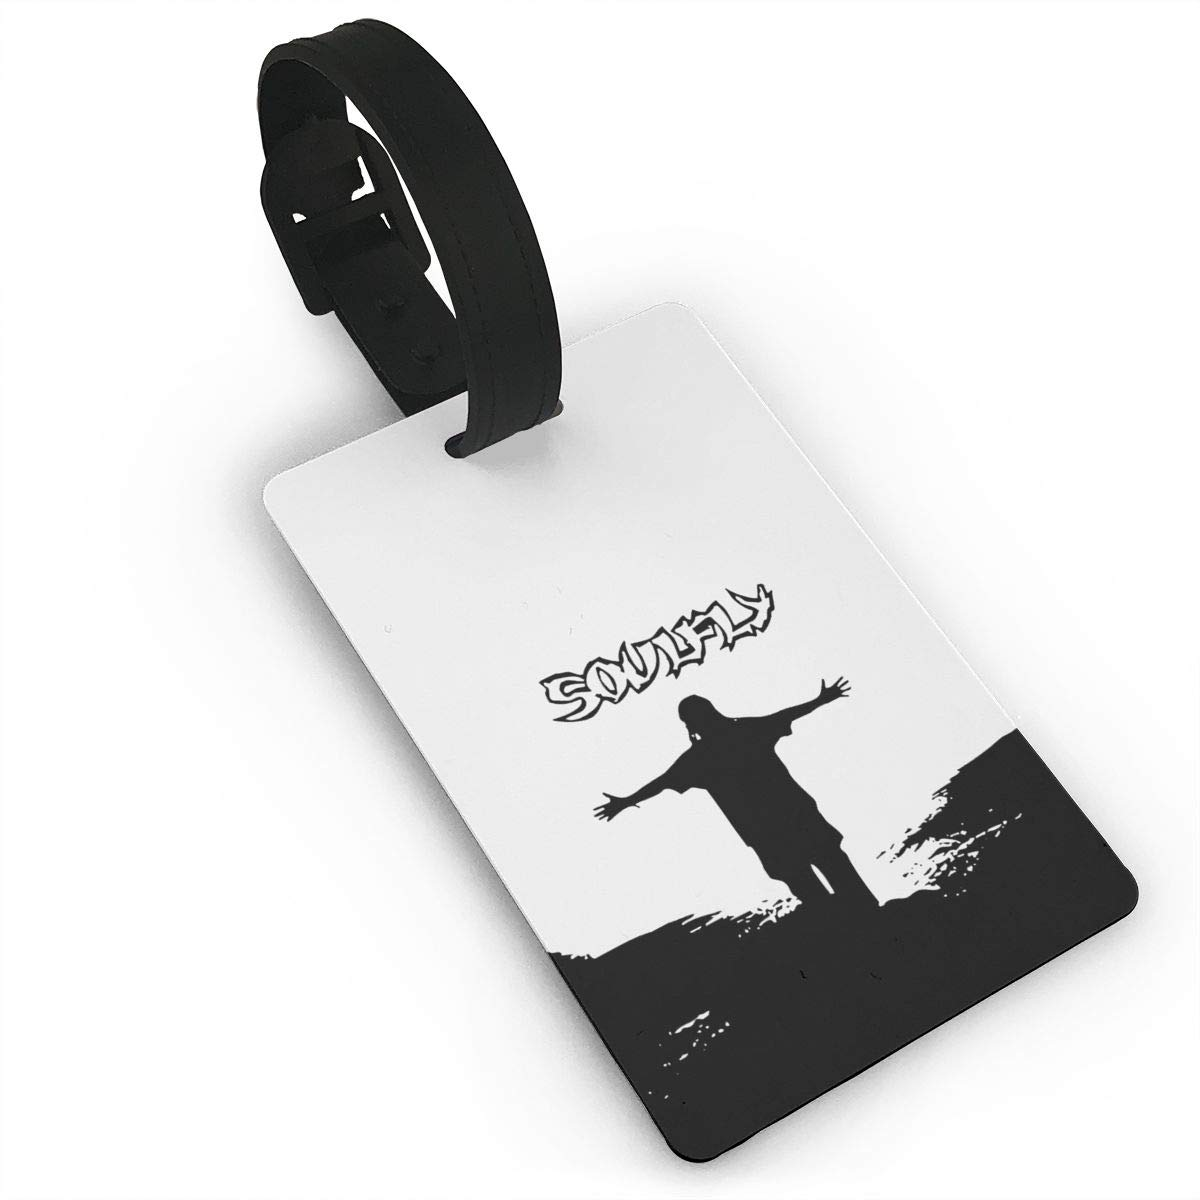 Soulfly Frozen Luggage And Backpack ID Tag Frozen Luggage And Backpack ID Tag